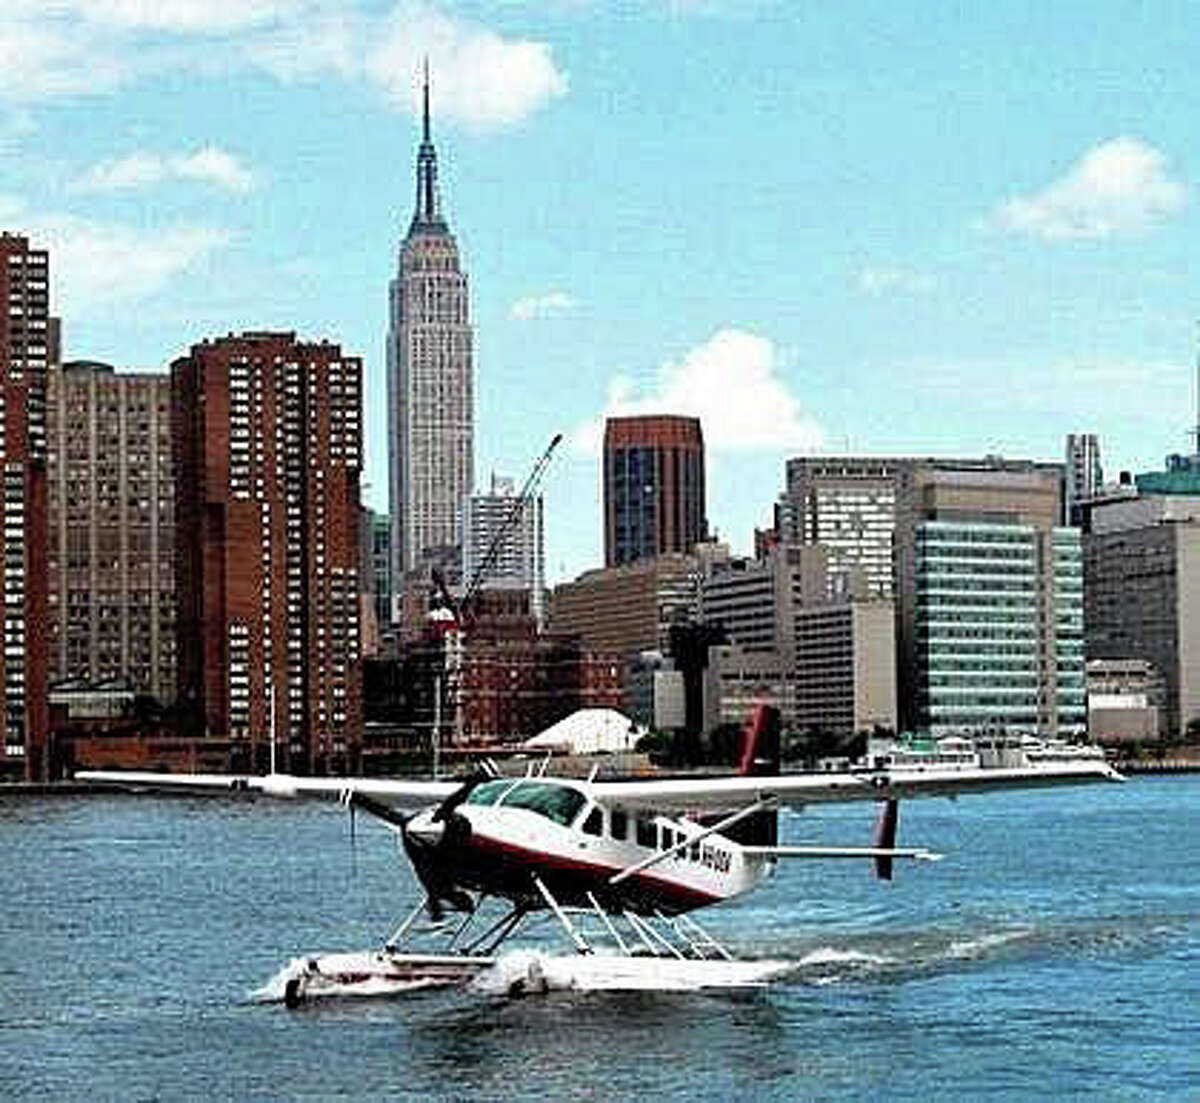 Tailwind, located at the Volo Aviation at Sikorsky Memorial Airport in Stratford, Conn., recently announced a new sea plane service connecting Bridgeport with Manhattan, Boston, and Philadelphia. The sea planes land in the East River in New York City,